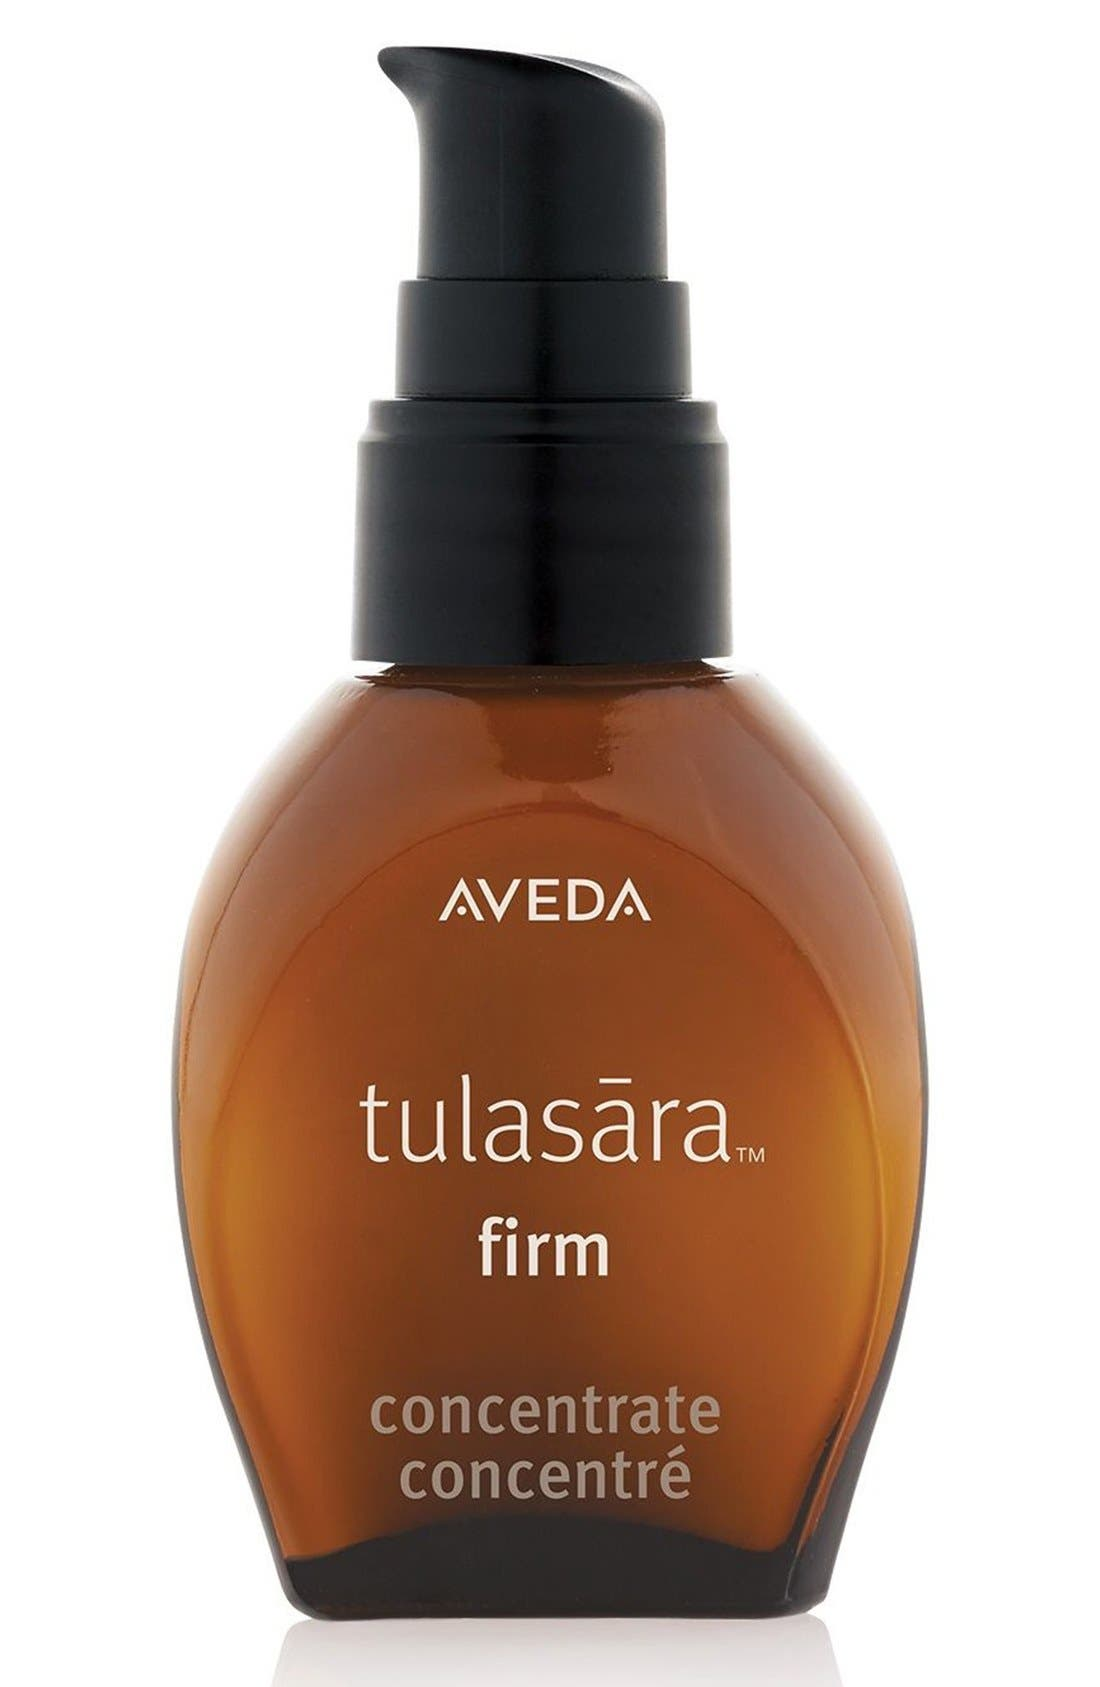 Aveda tulasara™ firm' Concentrate